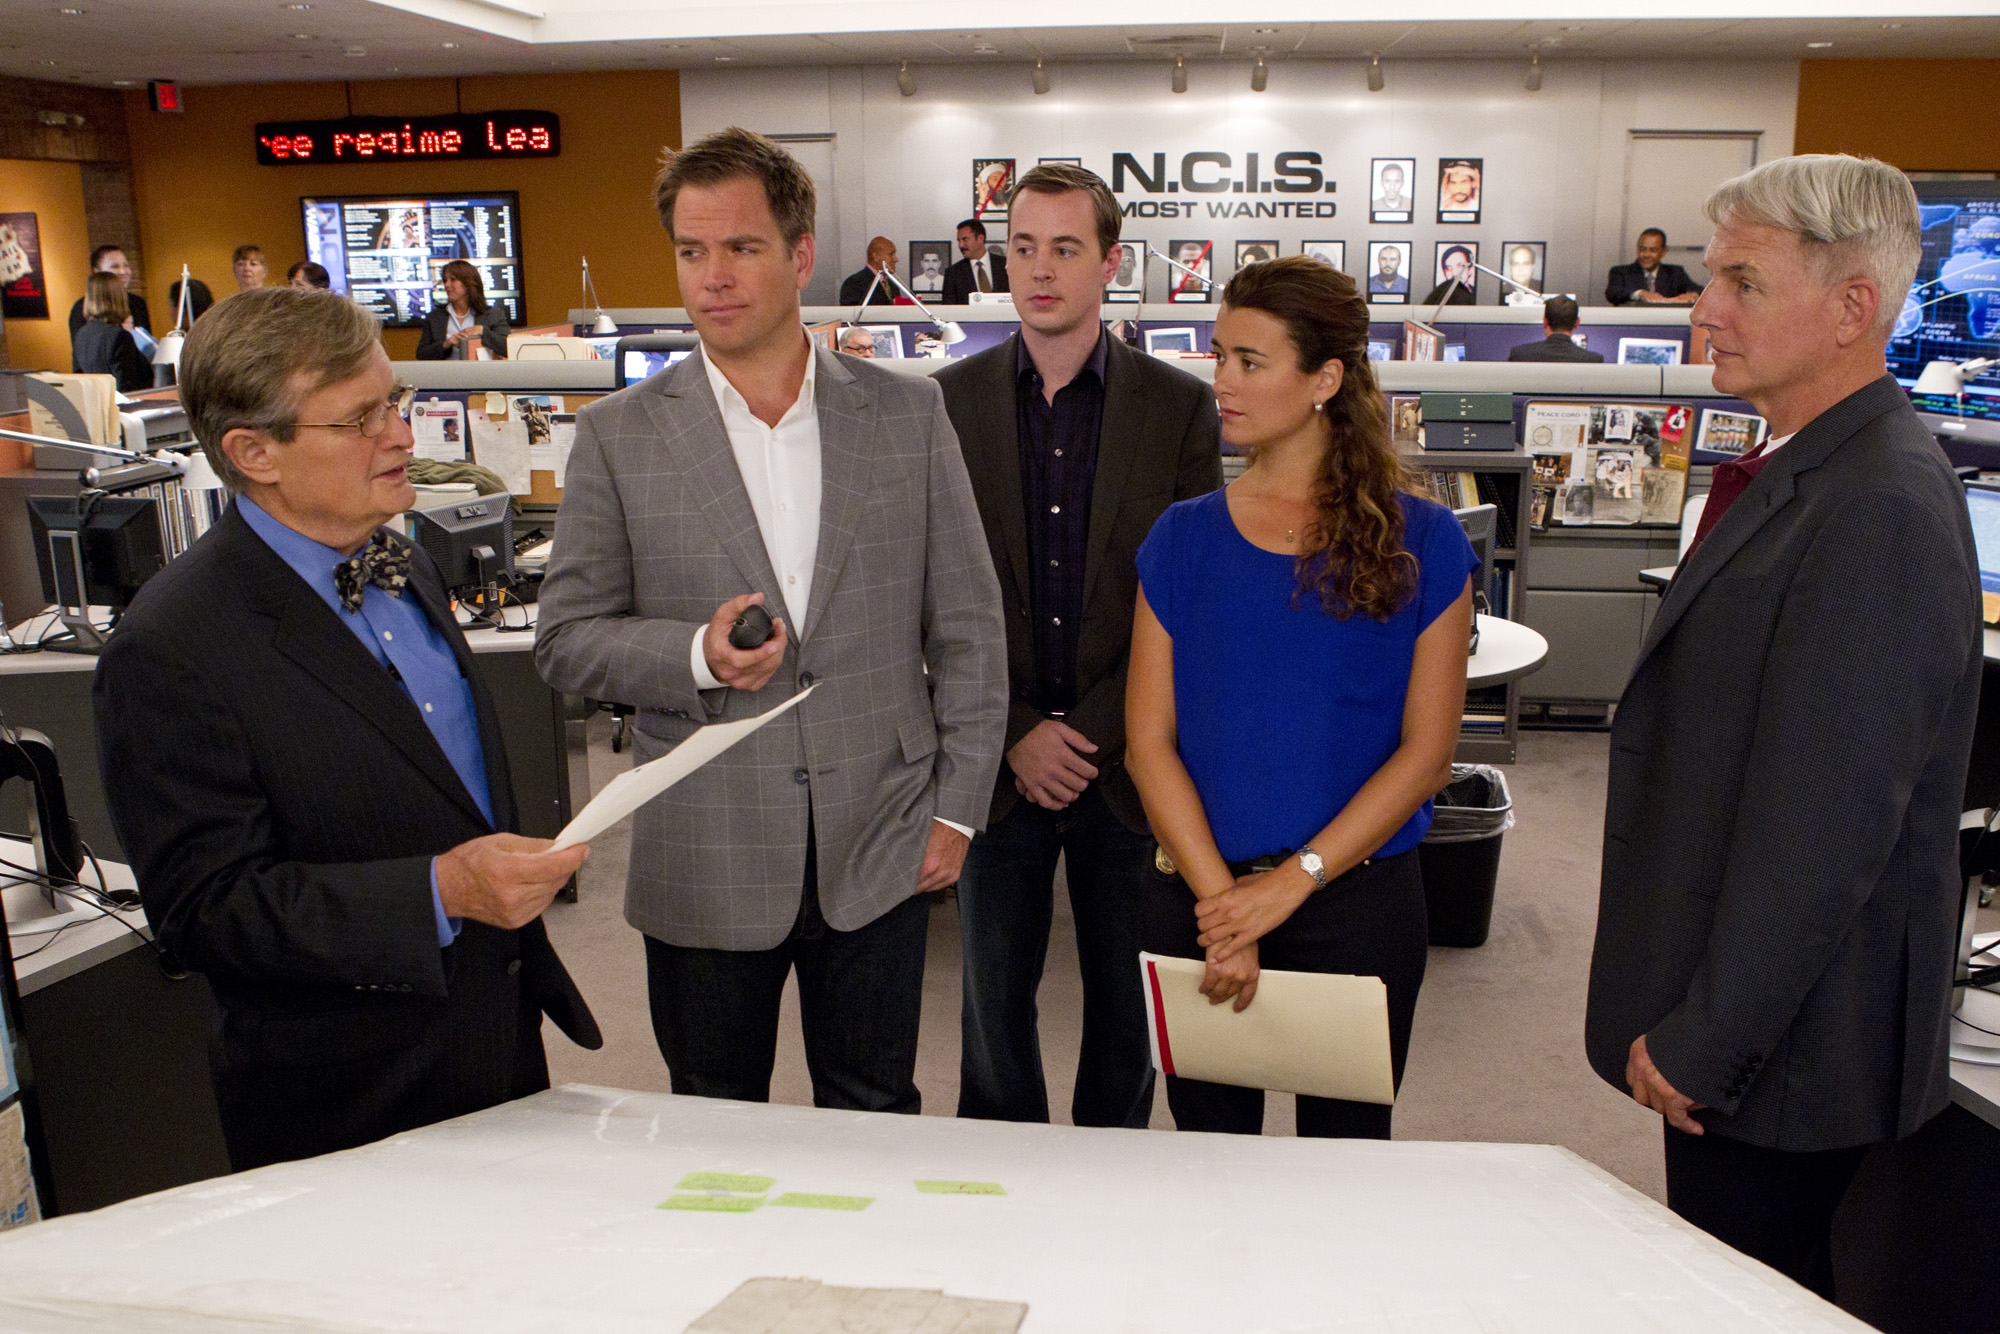 CBS' #1 Program/Drama NCIS Renewed for 2013-2014 Season